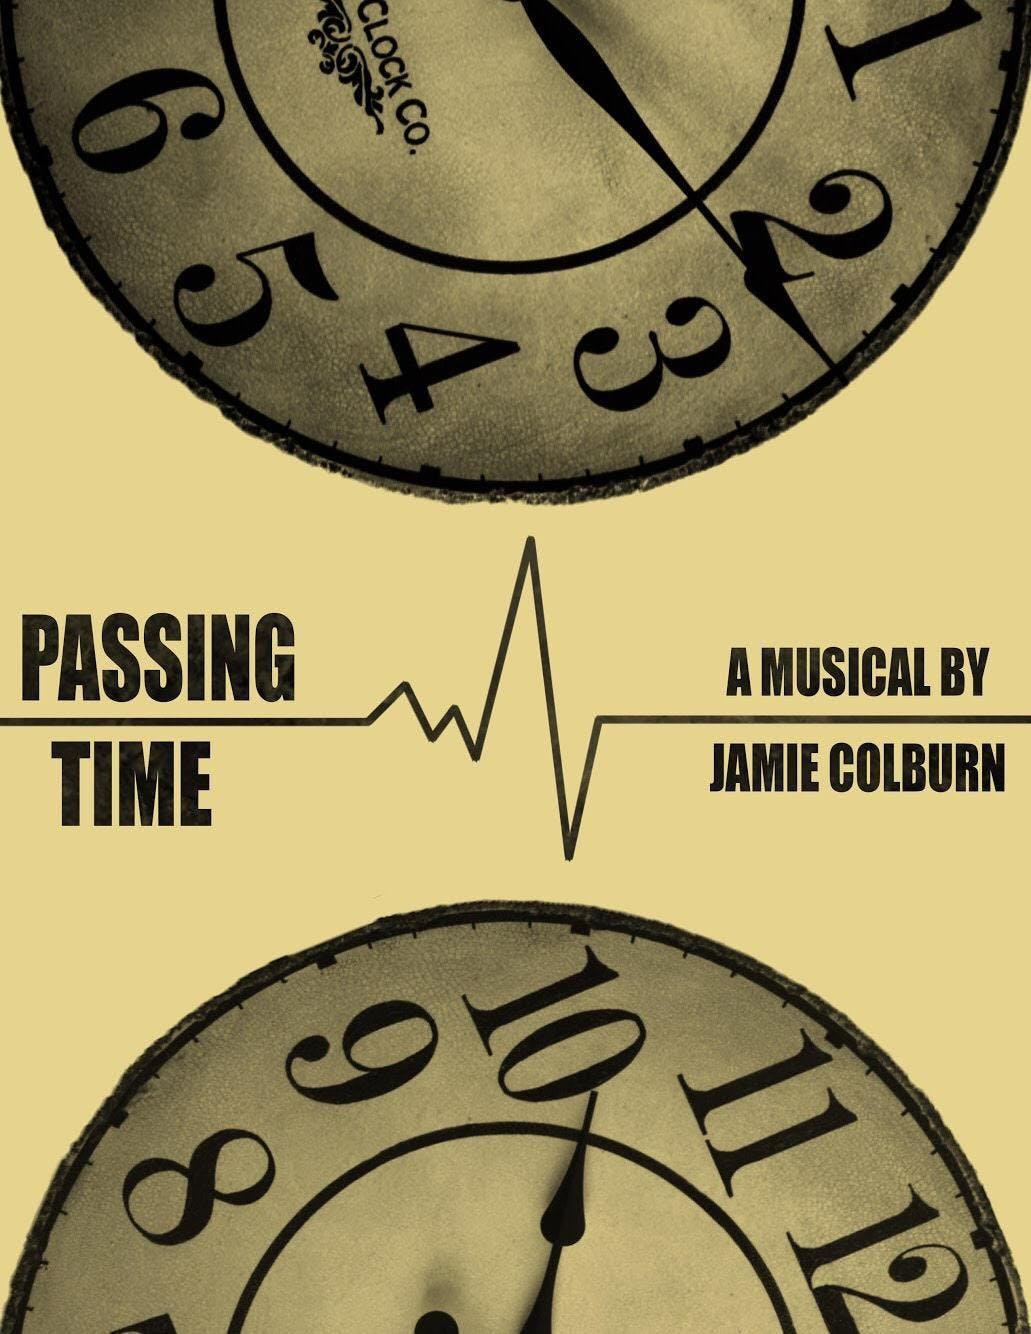 Passing Time-The Musical @ Park Theatre Tickets, Fri, Nov 9, 2018 at ...